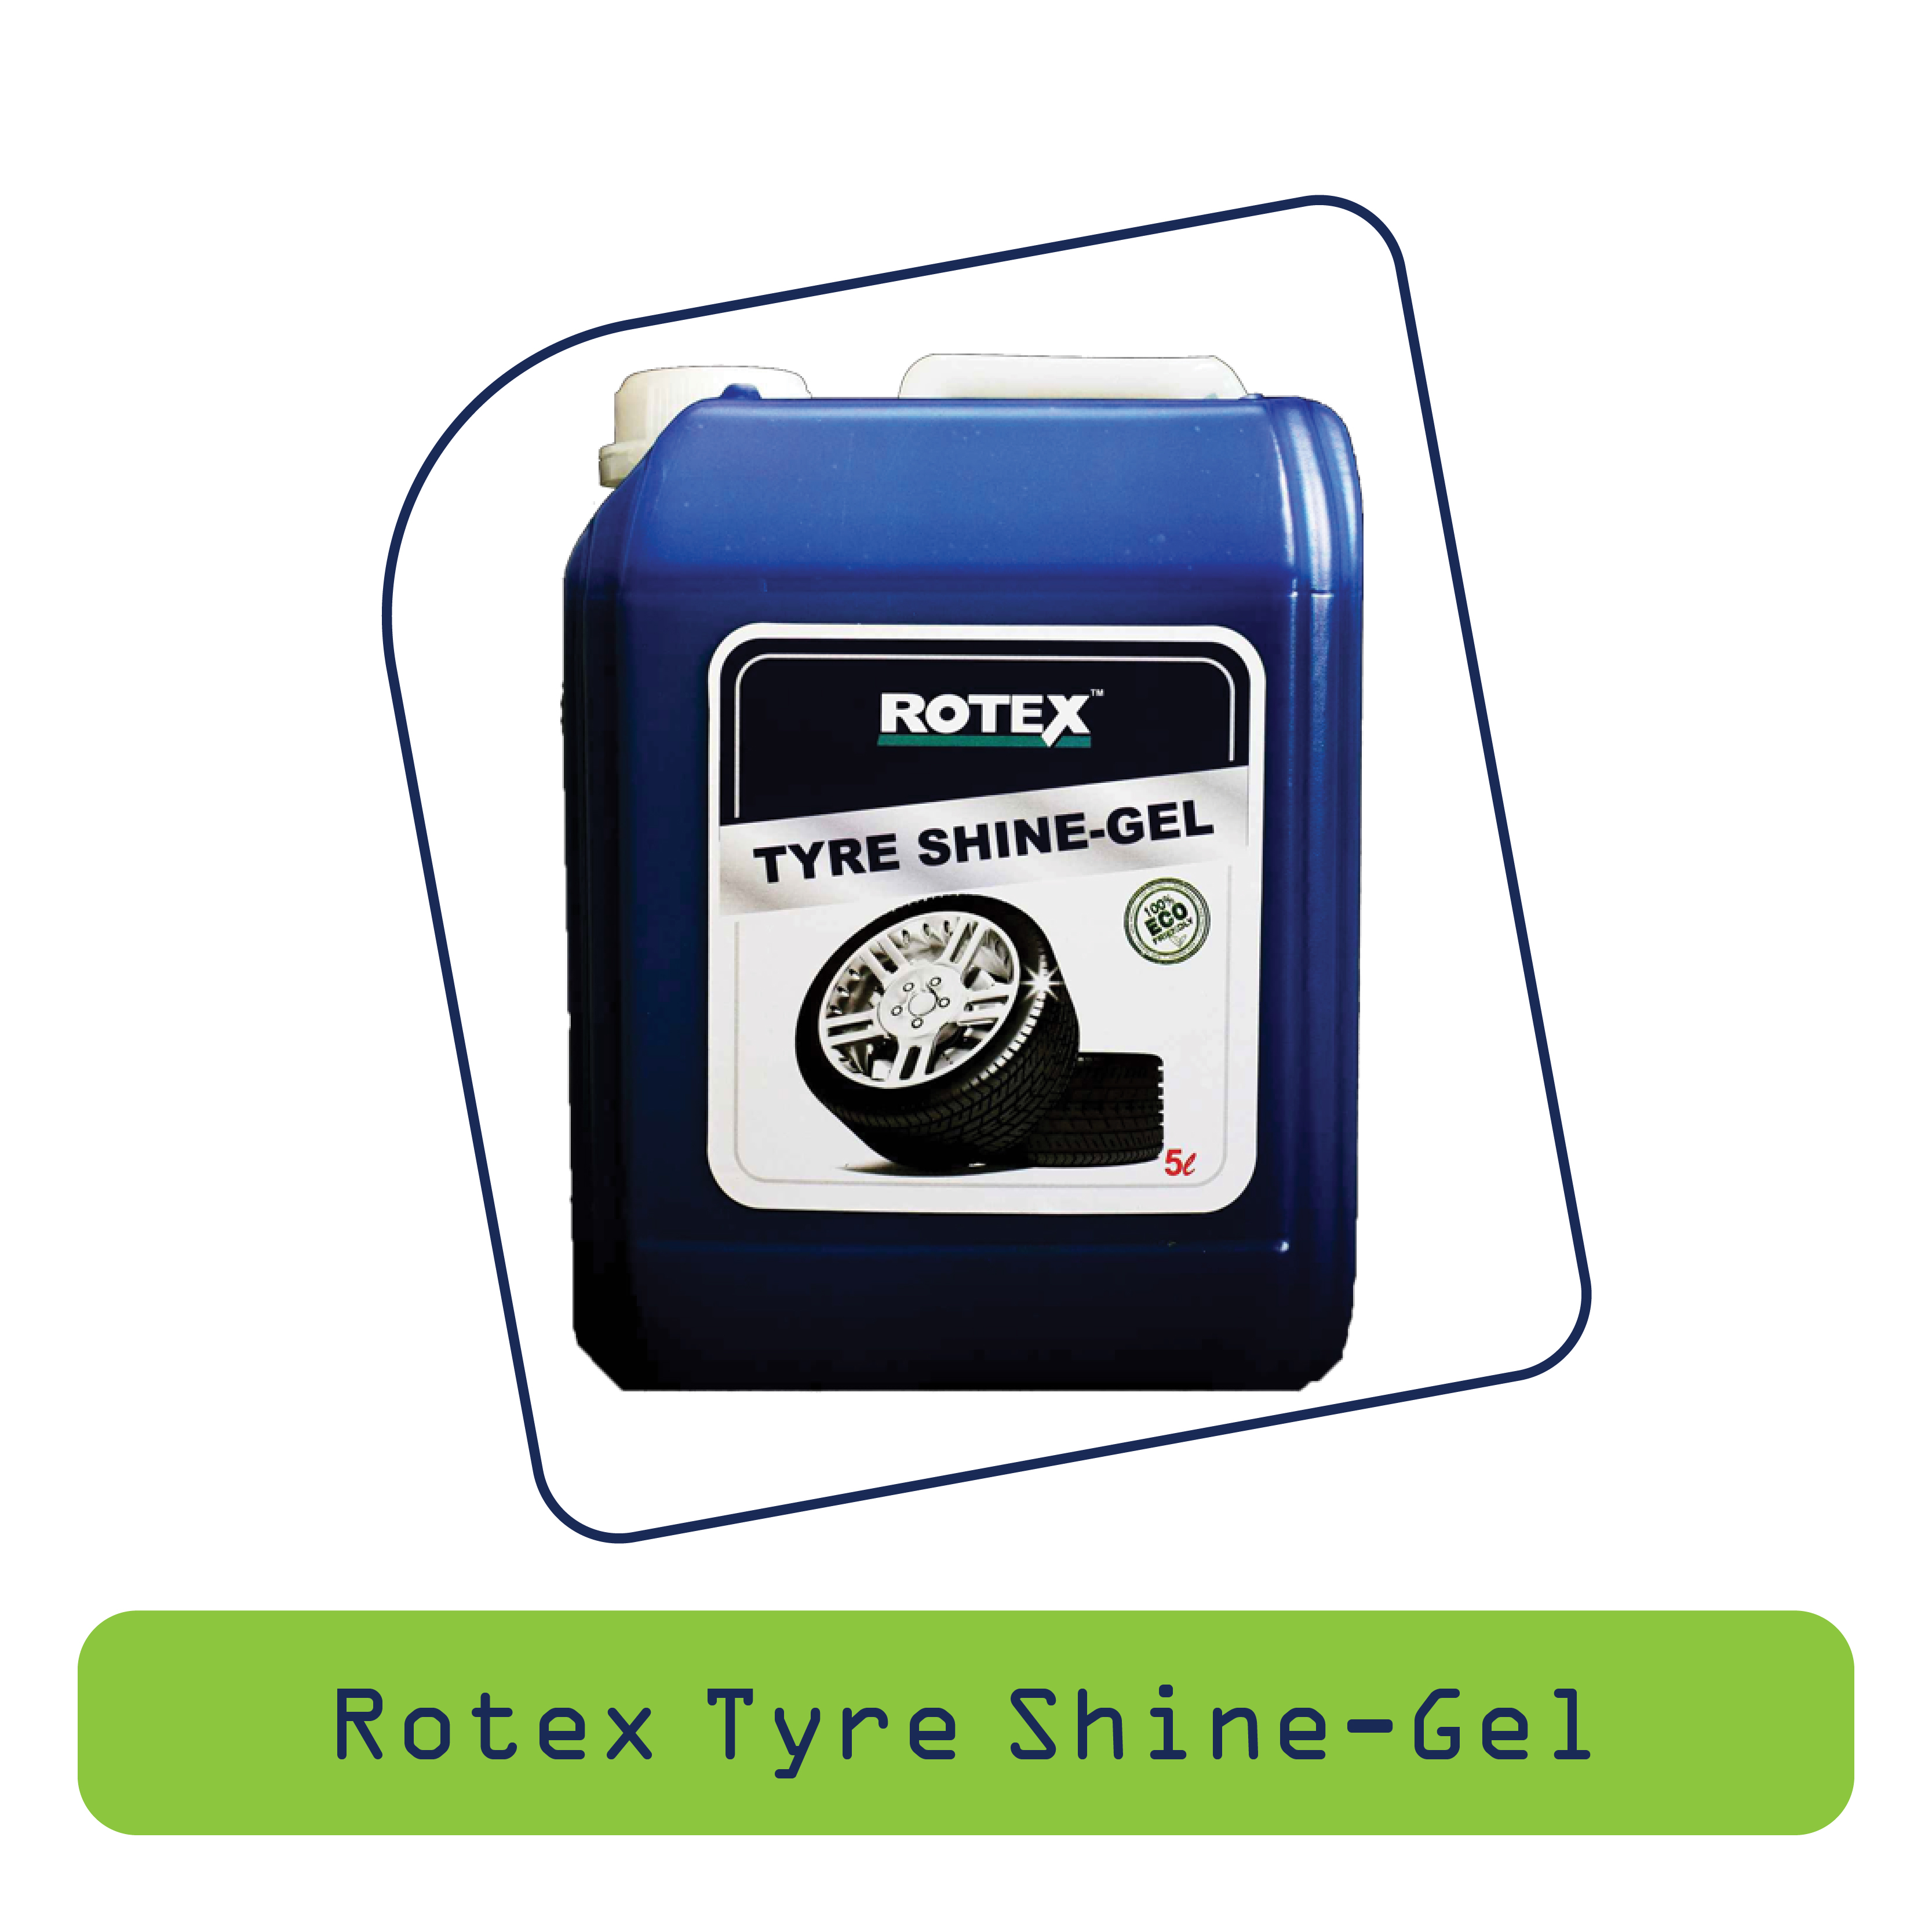 Rotex Tyre Shine Gel